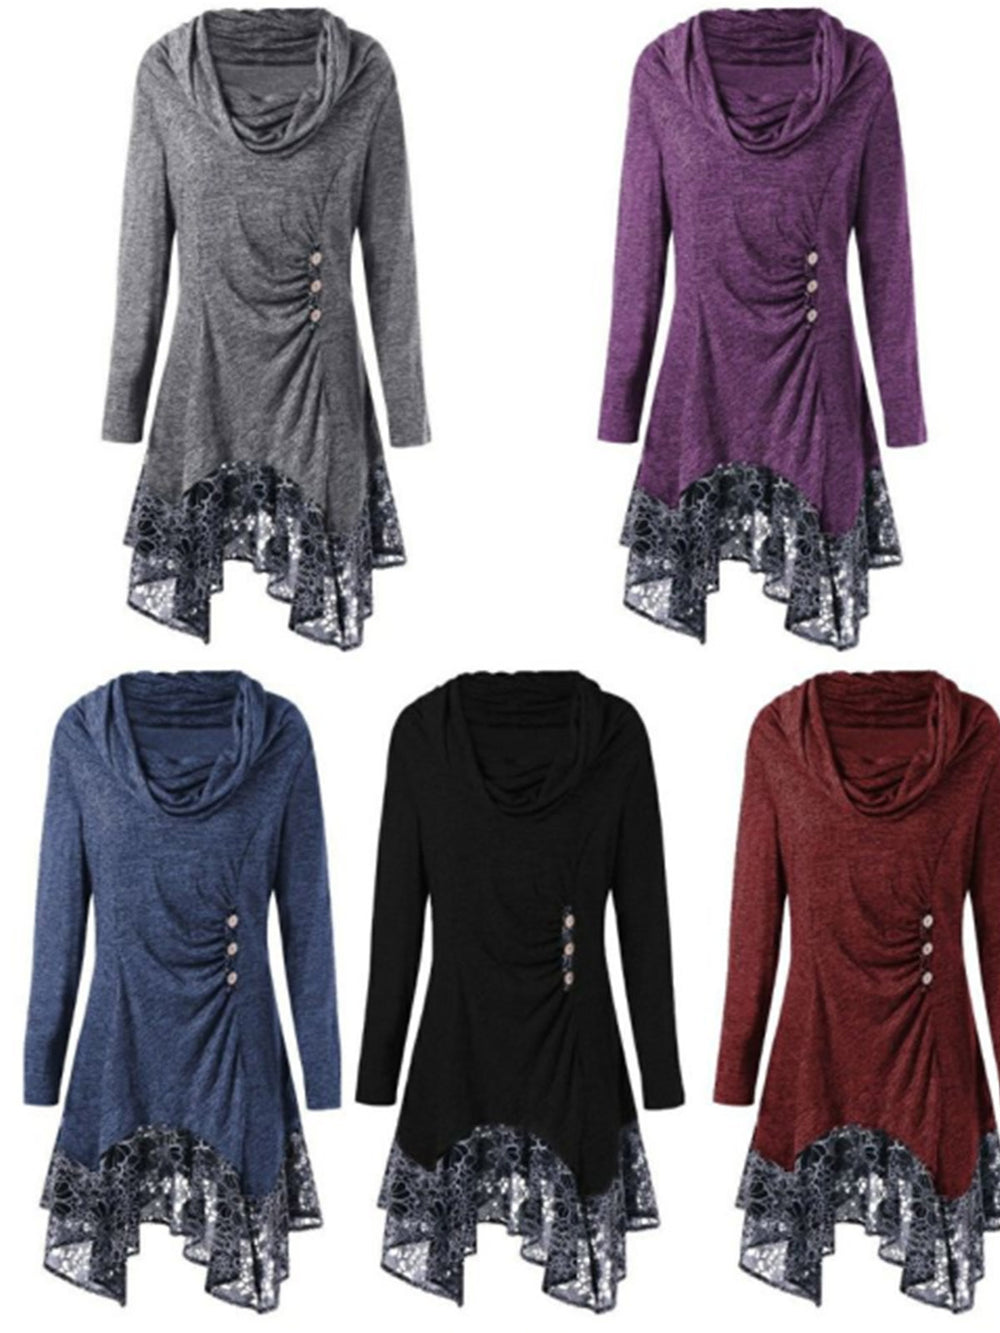 Sweet Appliqued Long Sleeve Fall Dresses